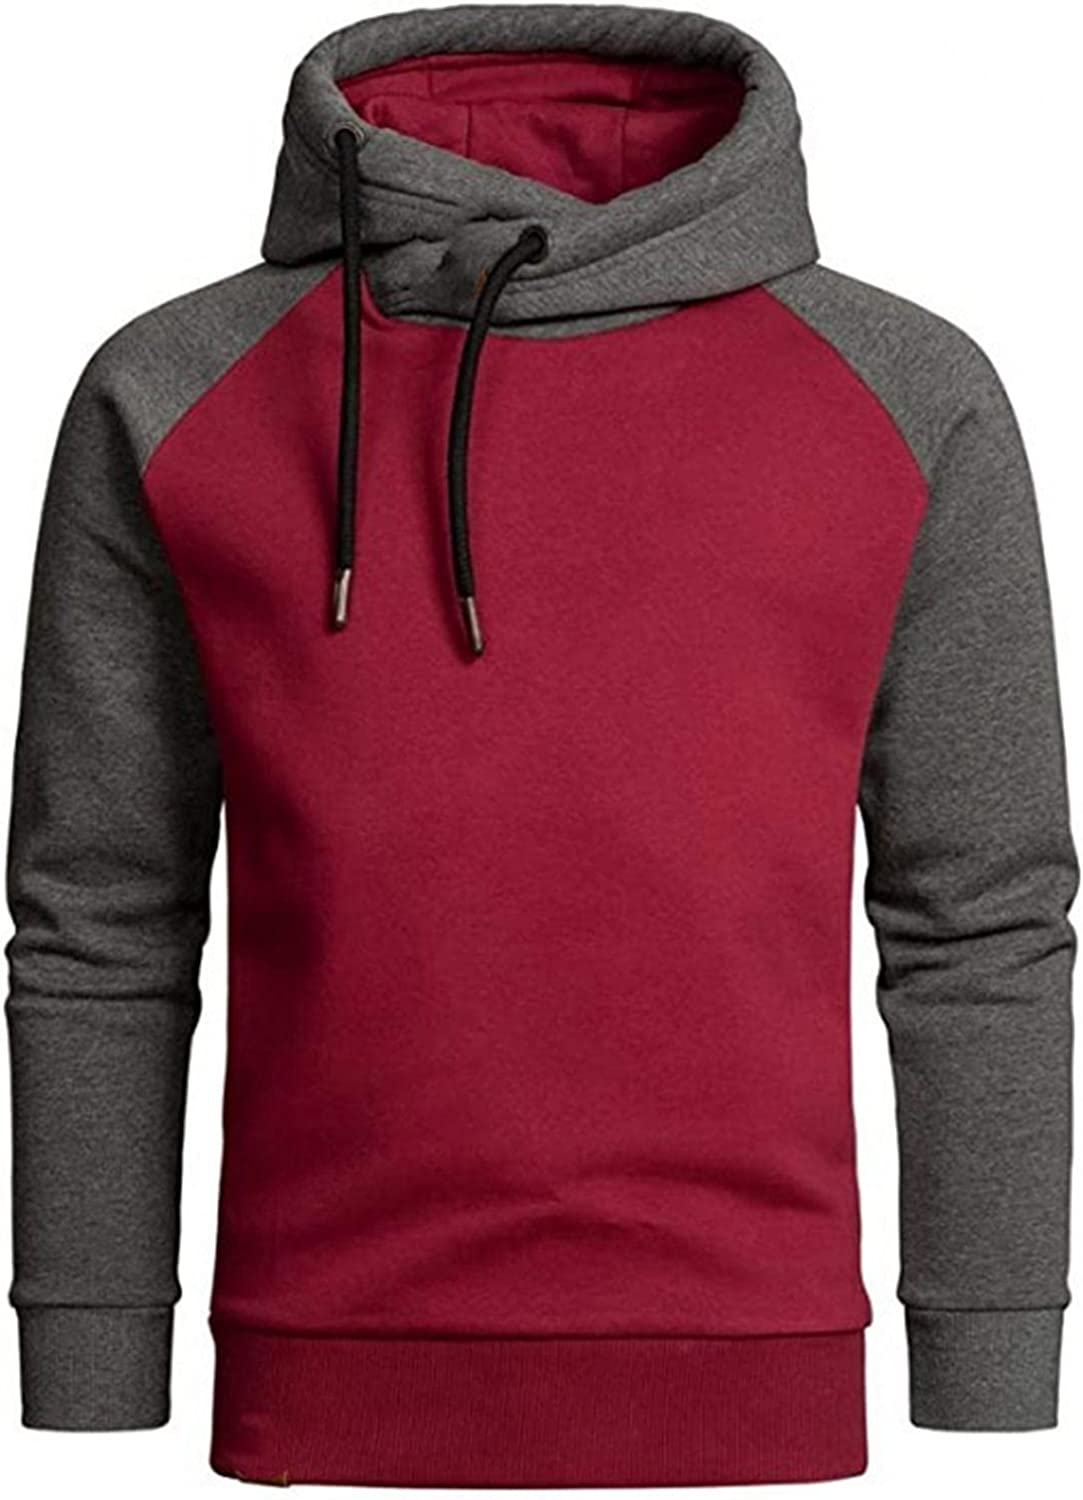 Men's Hoodies Swewatshirt Casual Lightweight Long Sleeve Fashion Sports Pullover Top with Drawstring